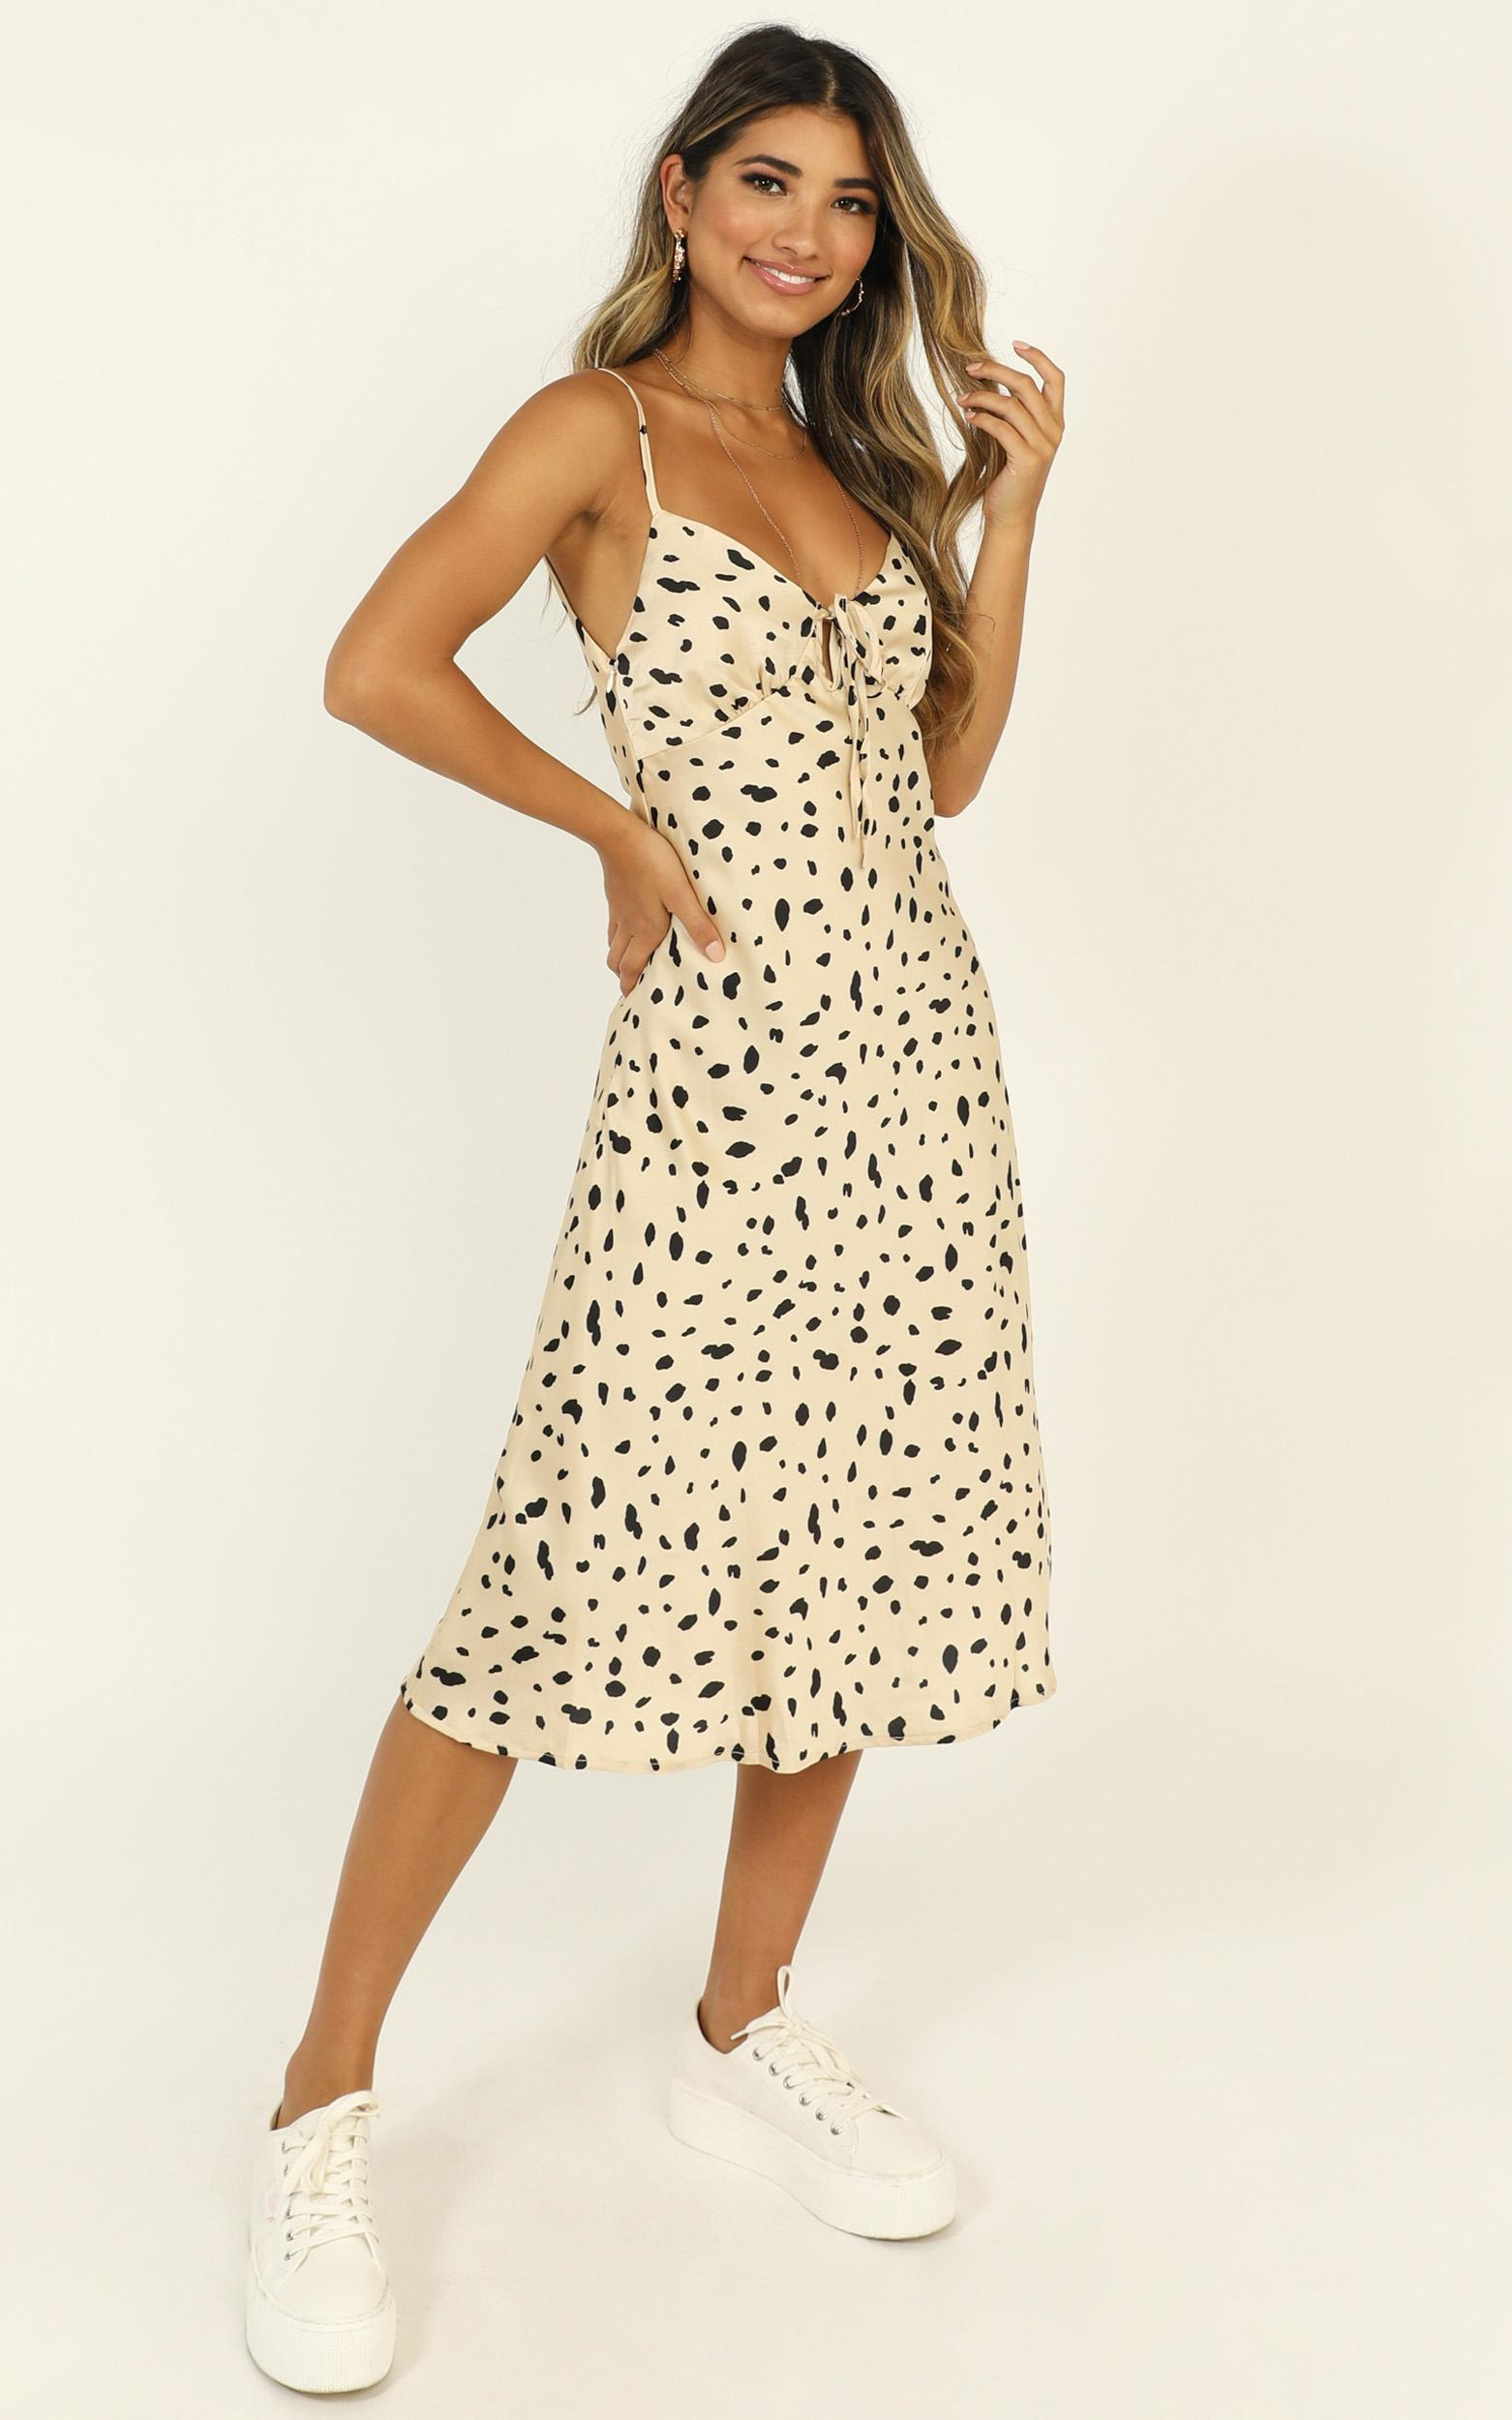 Toss The Dice dress in leopard print - 16 (XXL), Brown, hi-res image number null